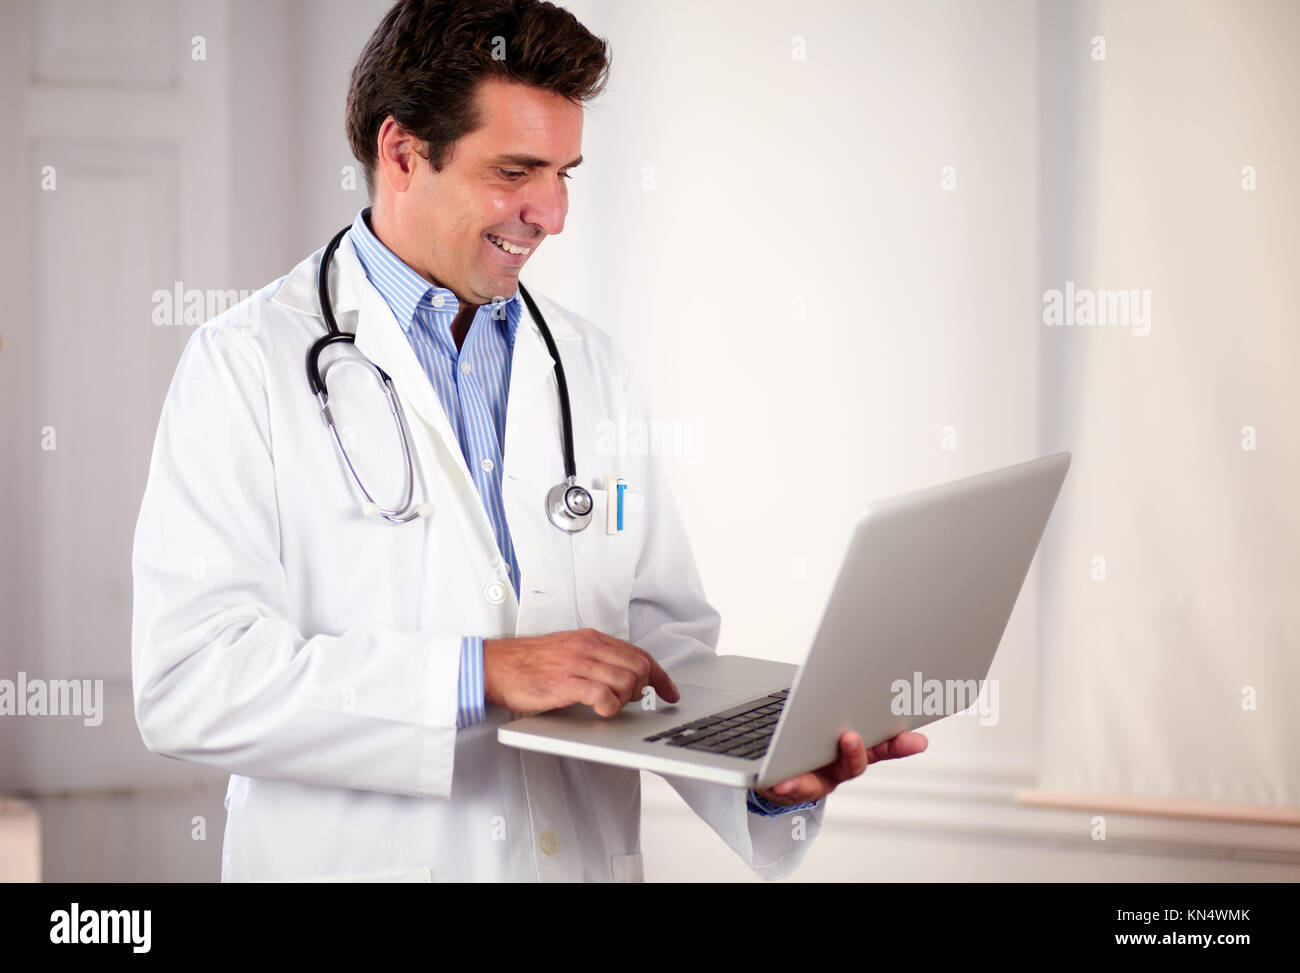 Portrait of a handsome doctor on white coat working on his laptop while standing on hospital. - Stock Image